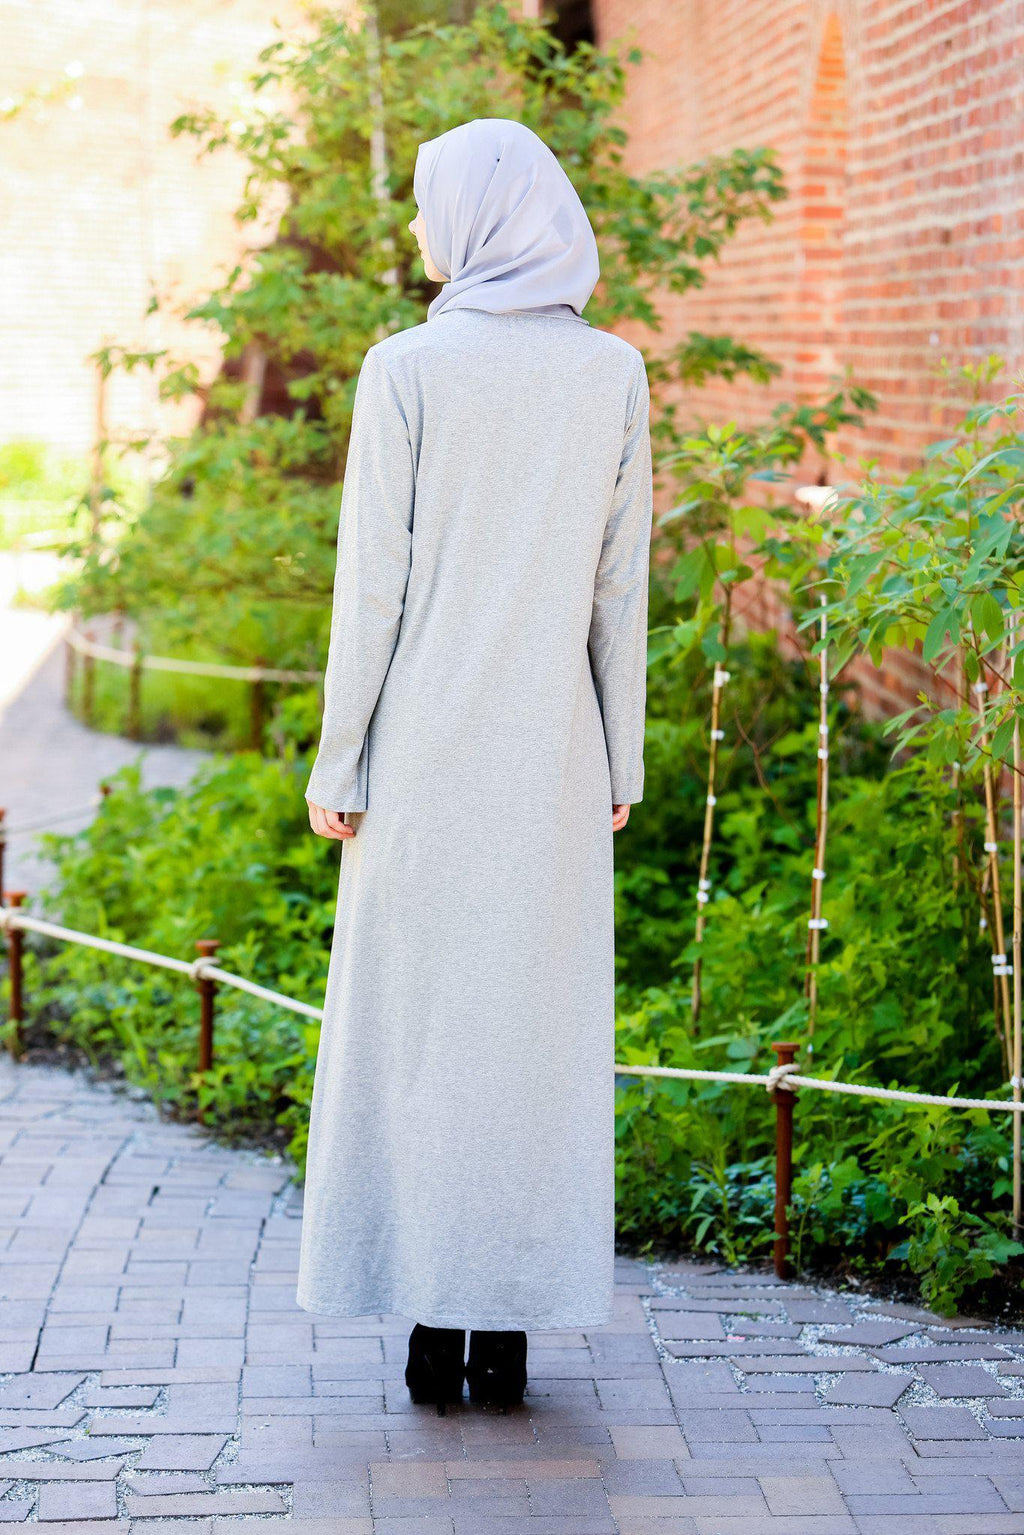 Gray Cotton Long Sleeve Maxi Dress - Abaya, Hijabs, Jilbabs, on sale now at UrbanModesty.com